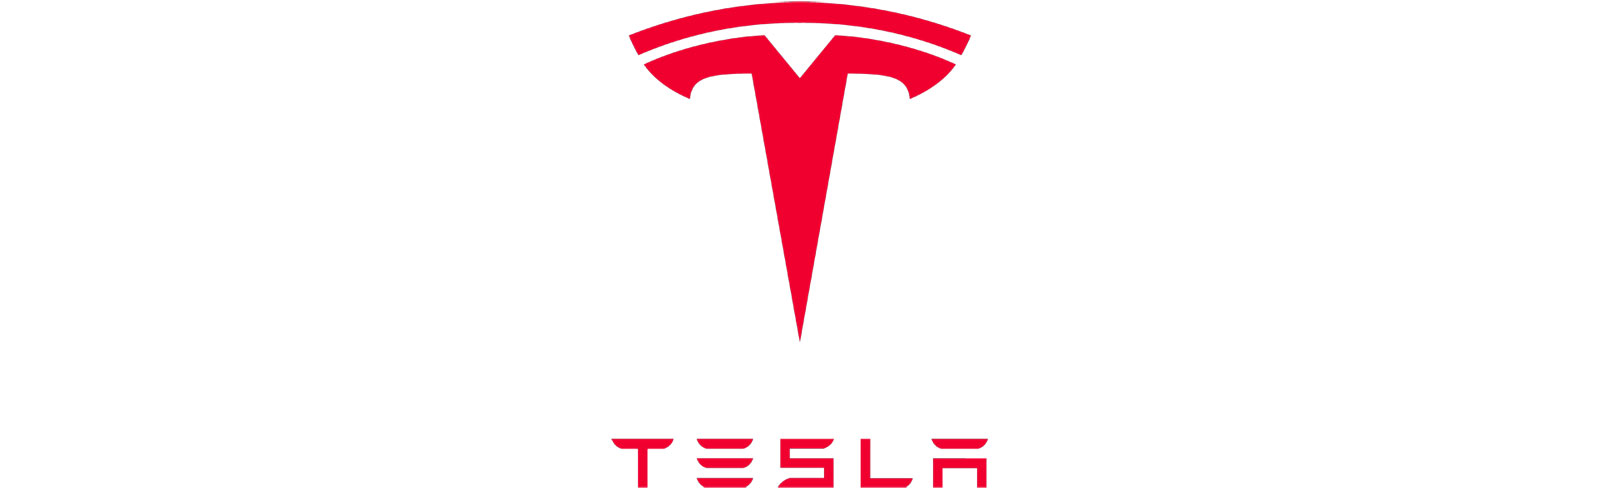 Tesla vehicle production and deliveries for Q3 2020